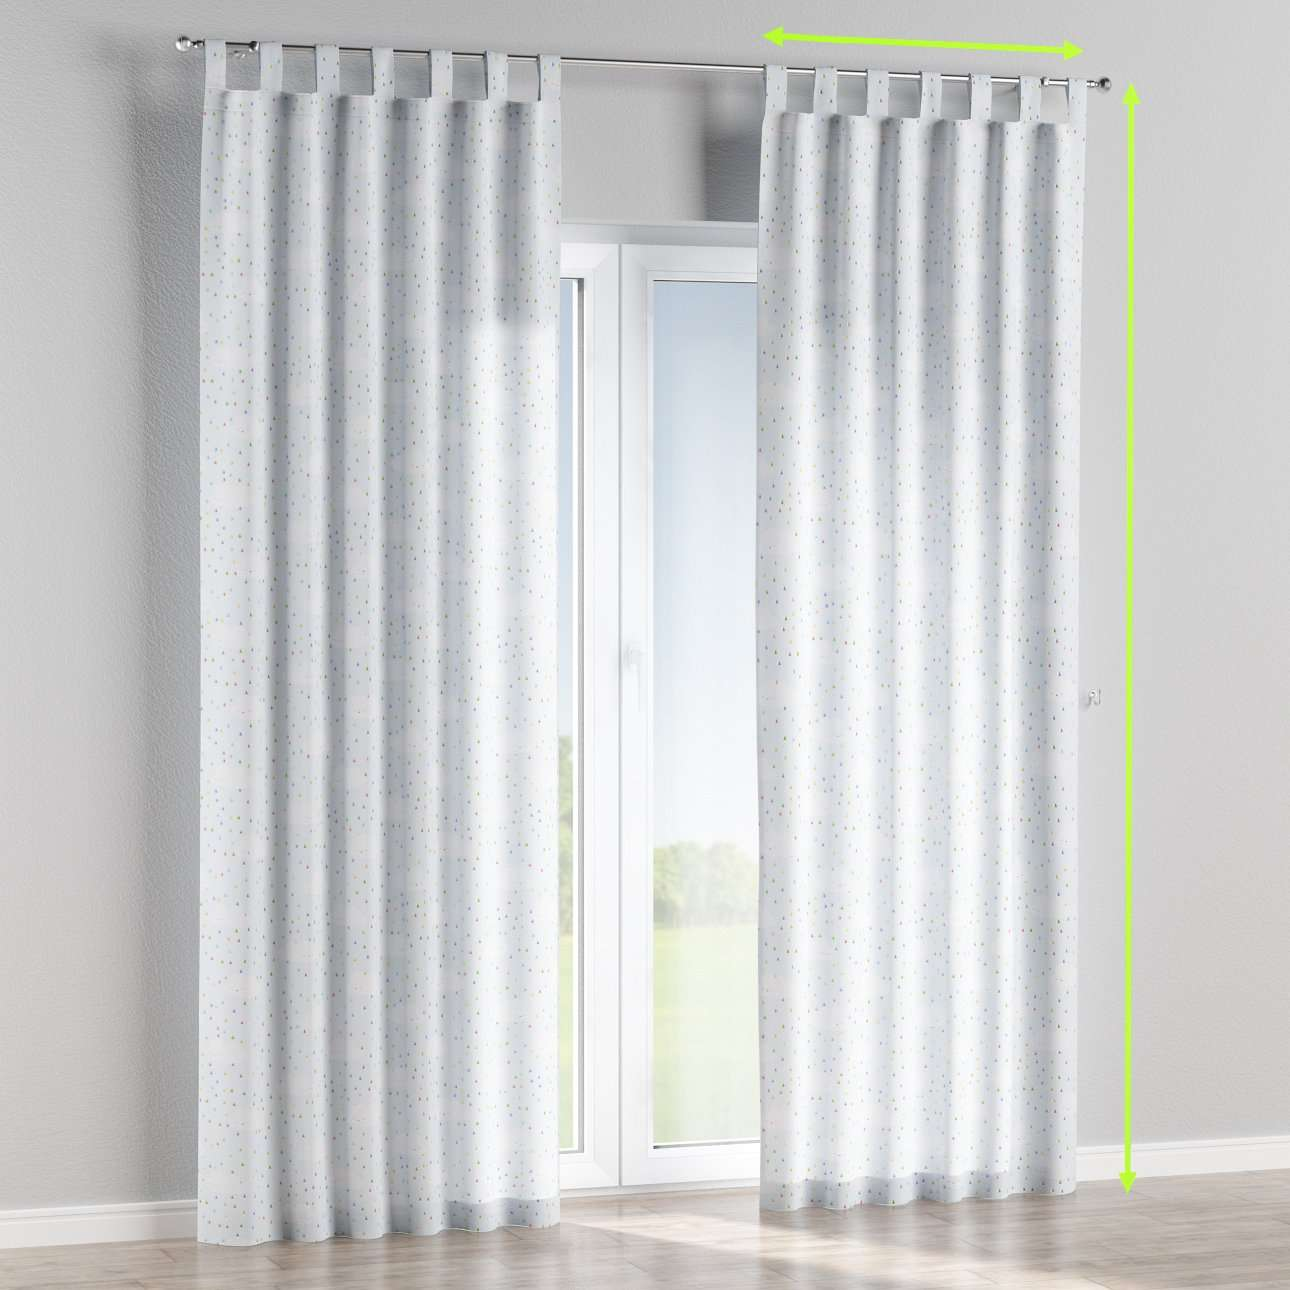 Tab top curtains in collection Apanona, fabric: 151-03